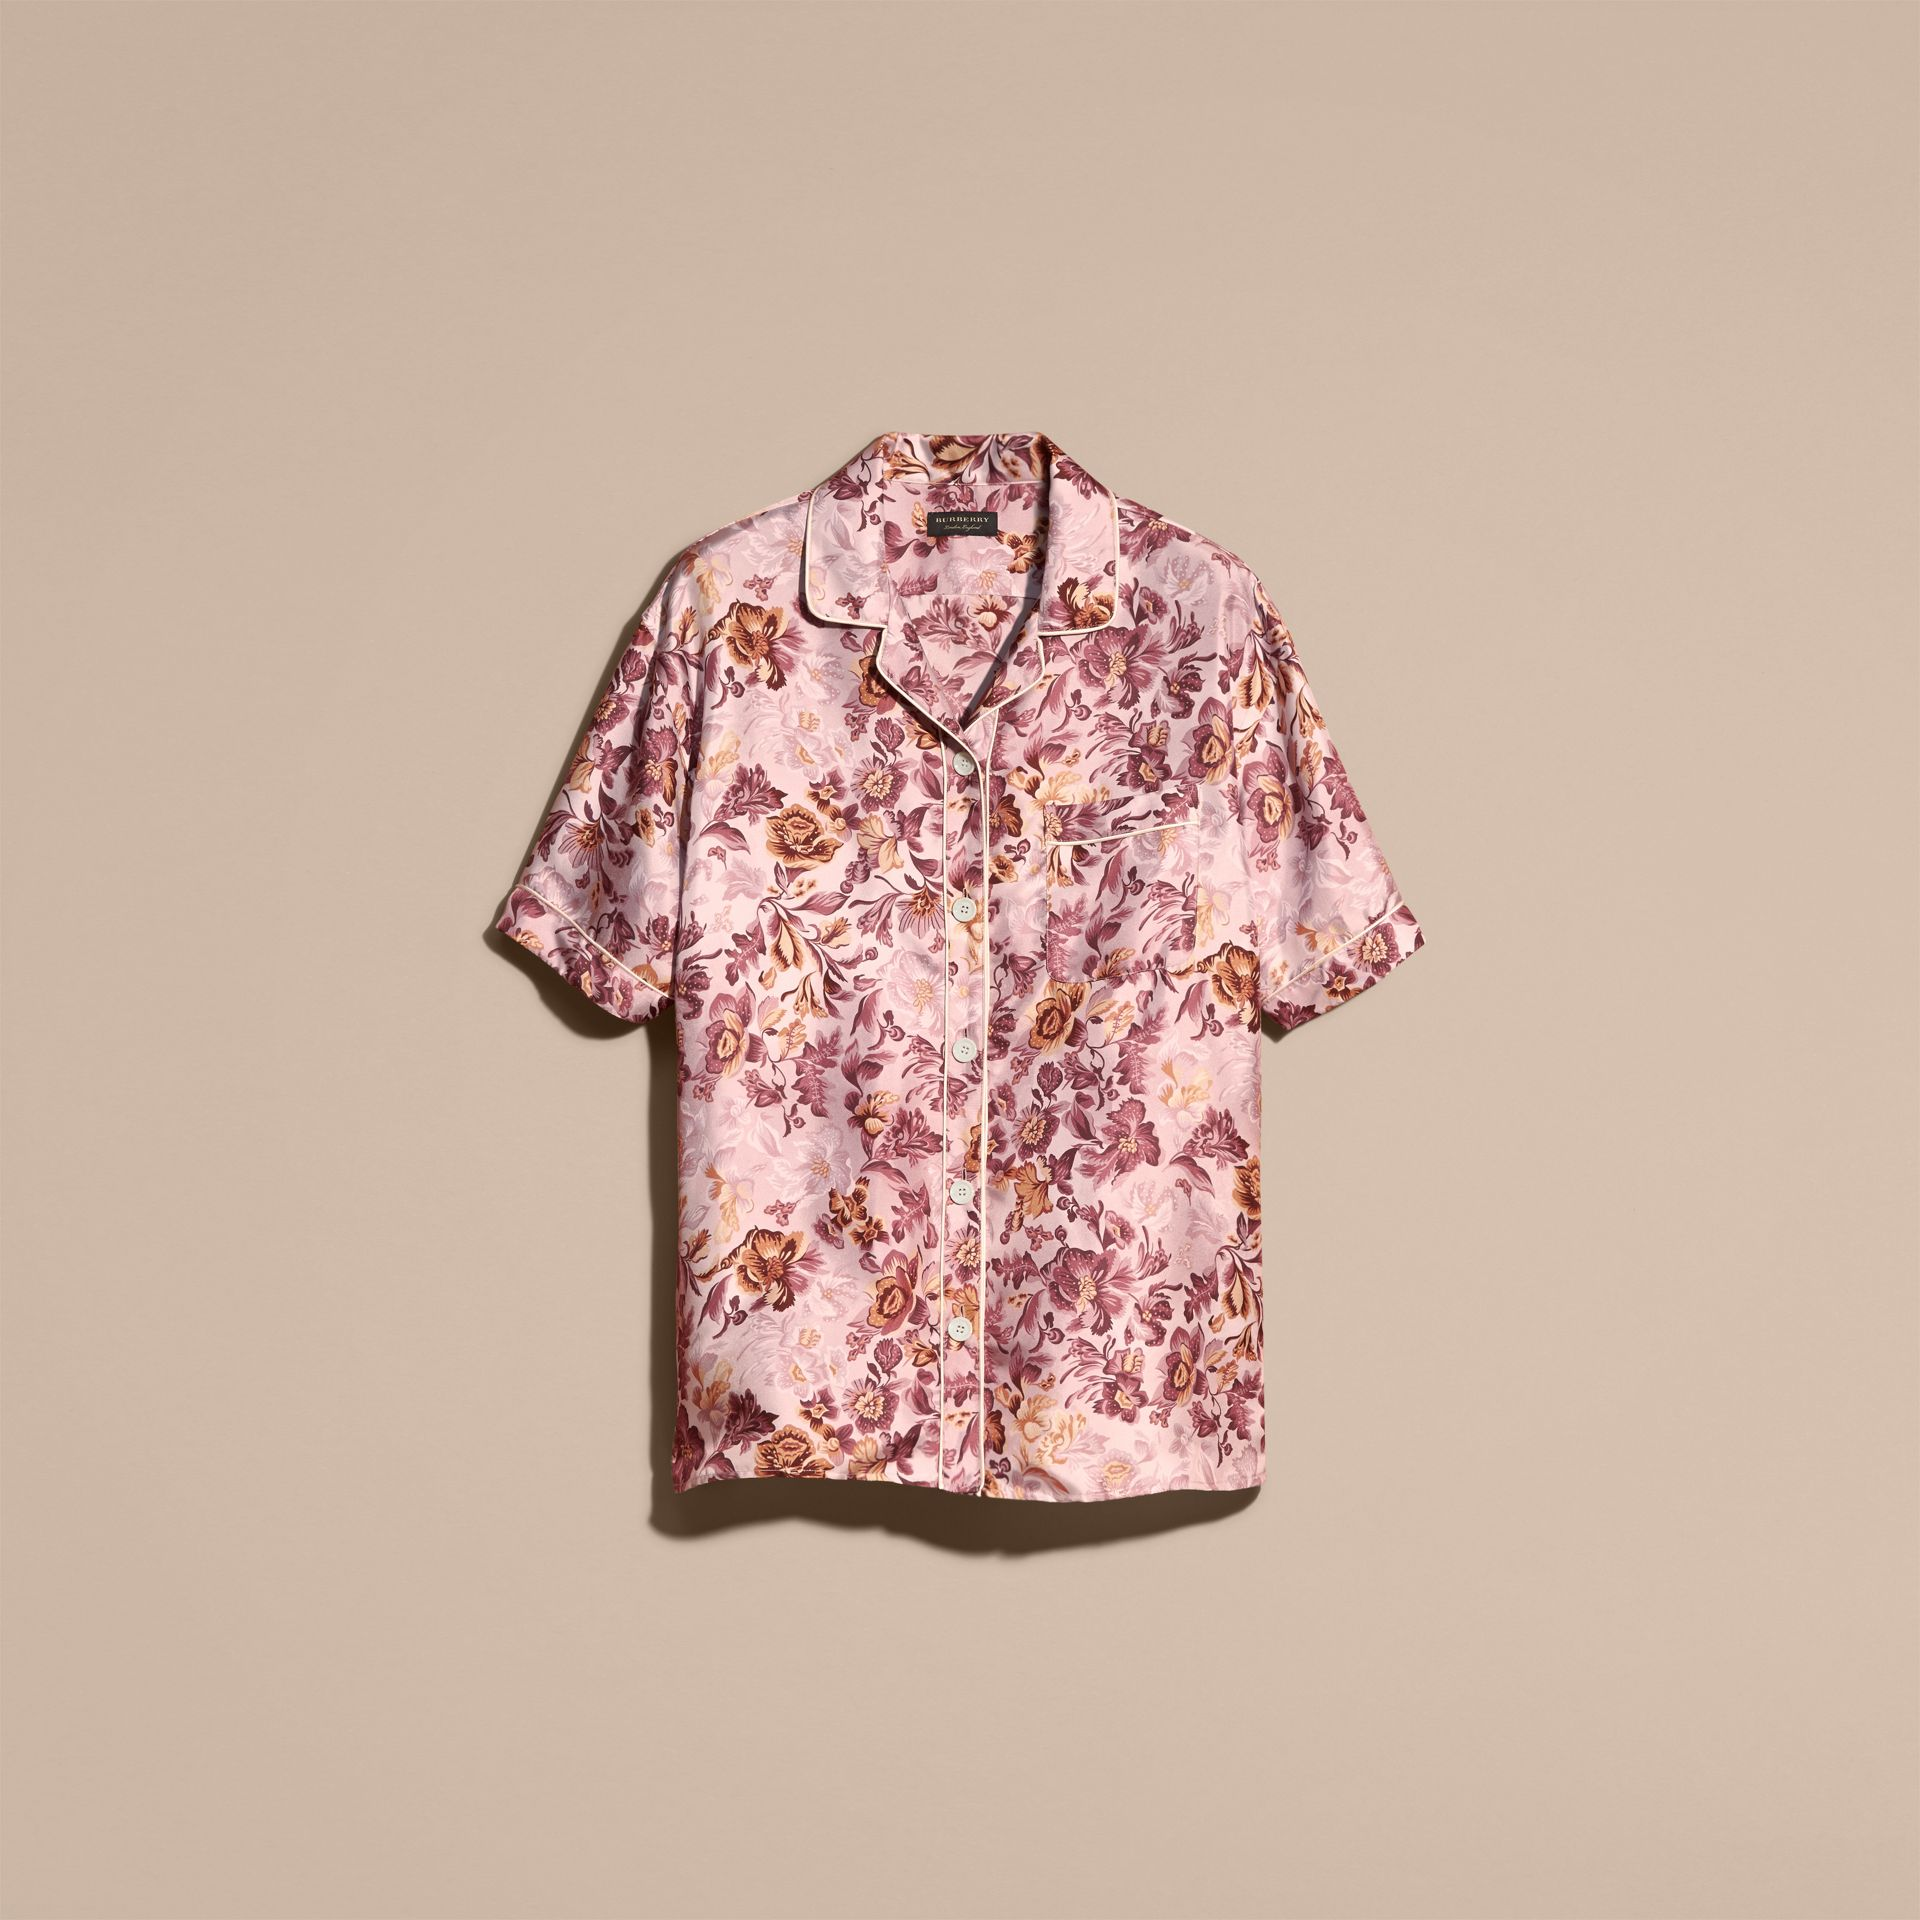 Pink heather Short-sleeved Floral Print Silk Pyjama-style Shirt Pink Heather - gallery image 4